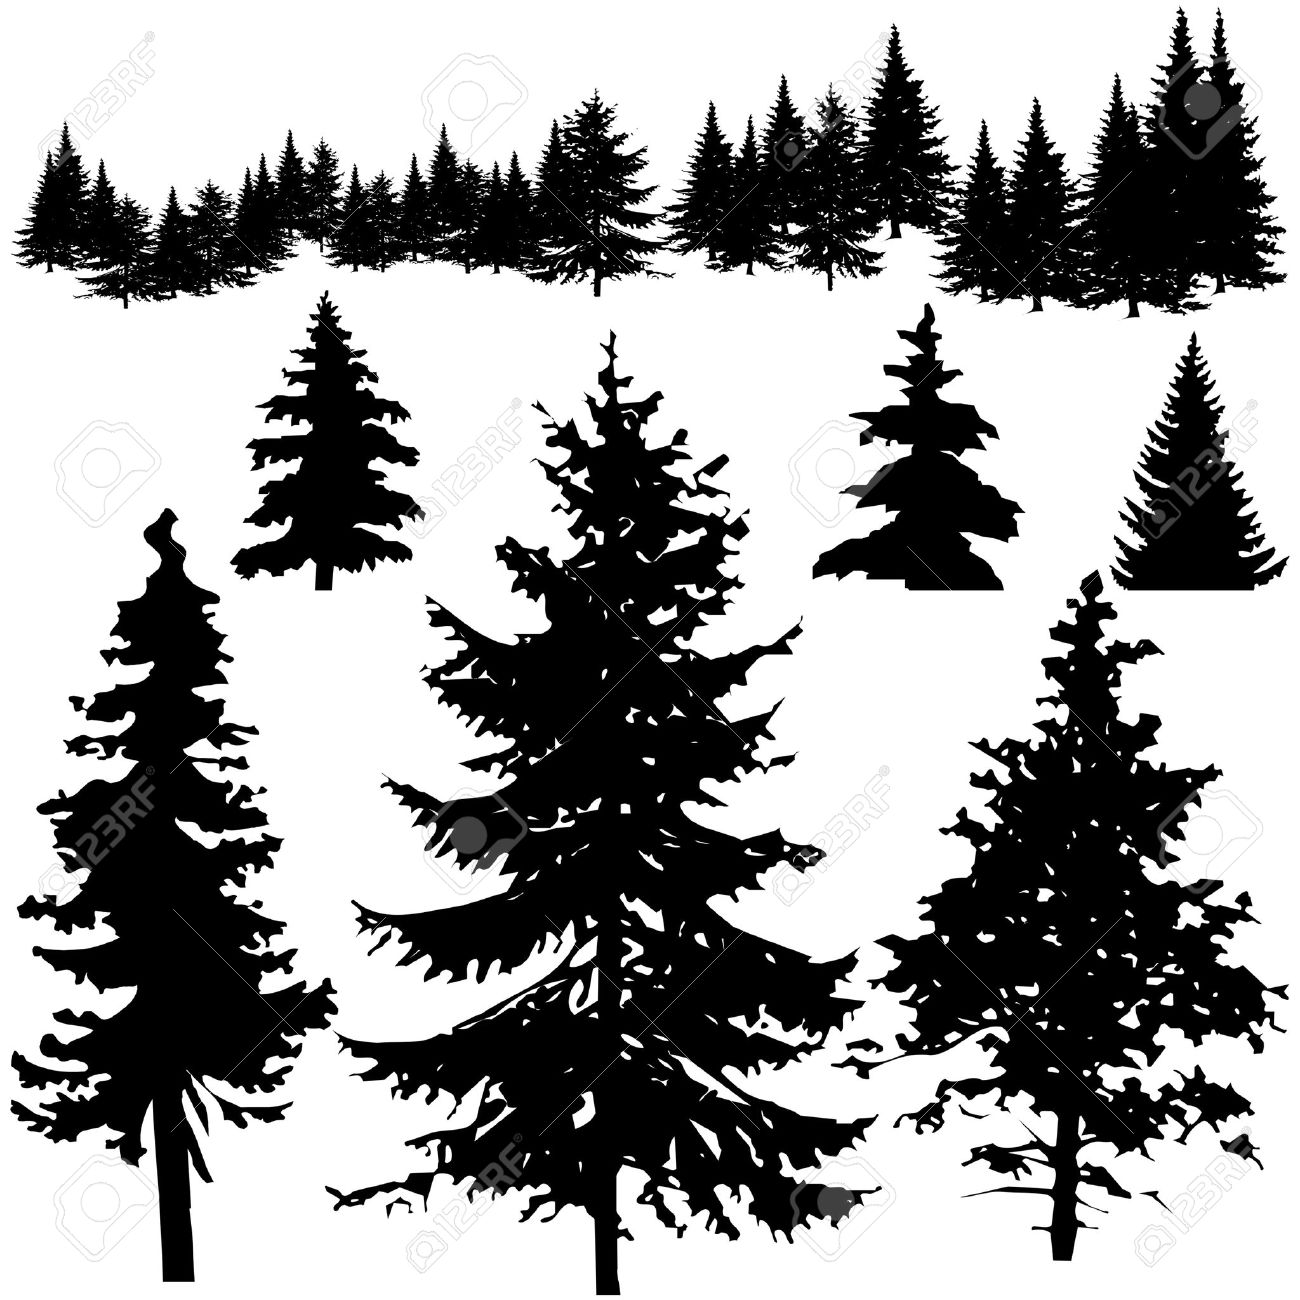 Detailed Vectoral Pine Tree Silhouettes Royalty Free Cliparts Vectors And Stock Illustration Image 4888810